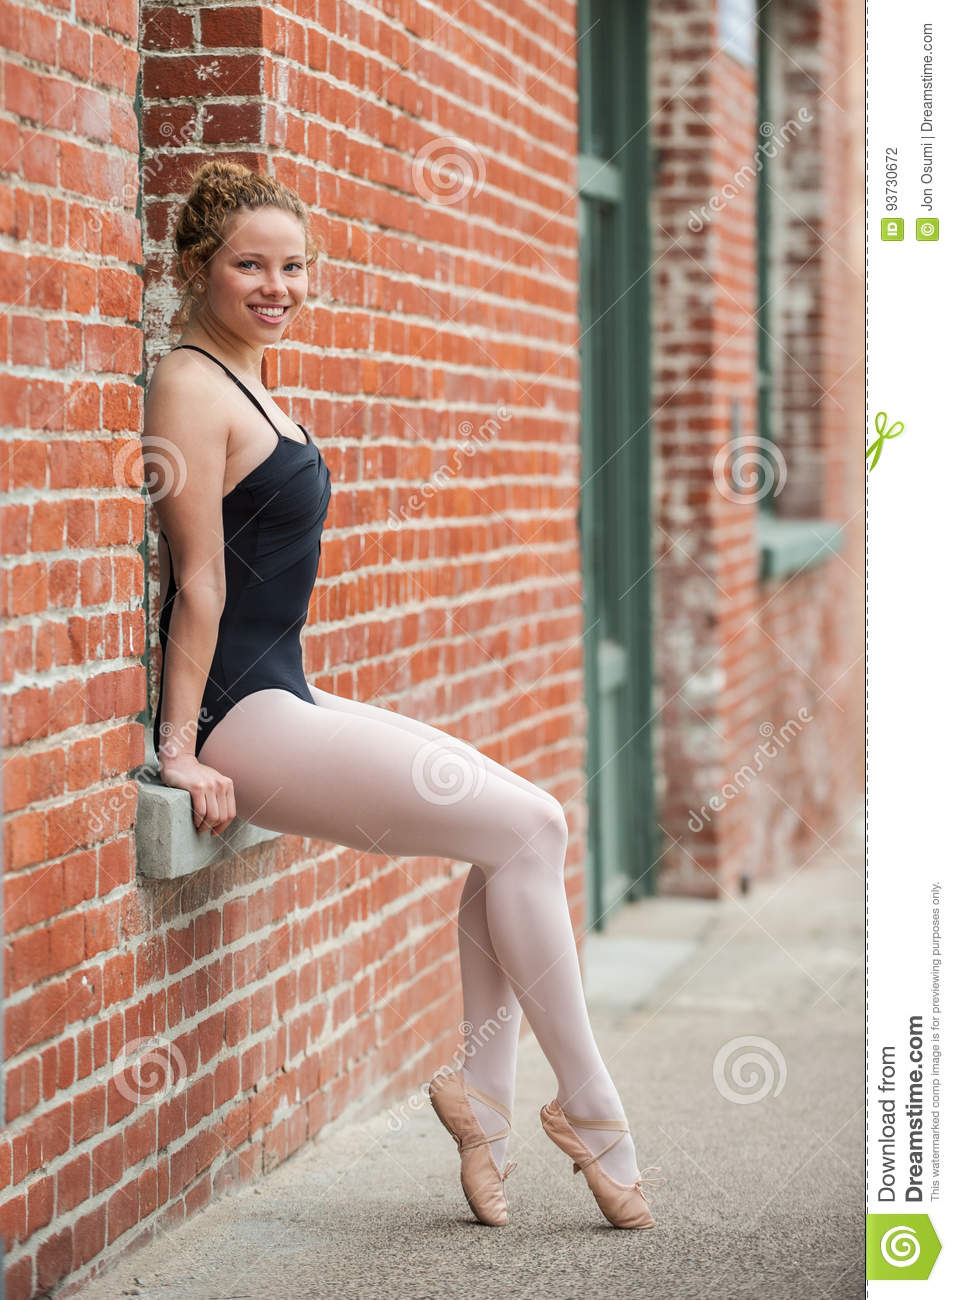 Poised and posture in the window